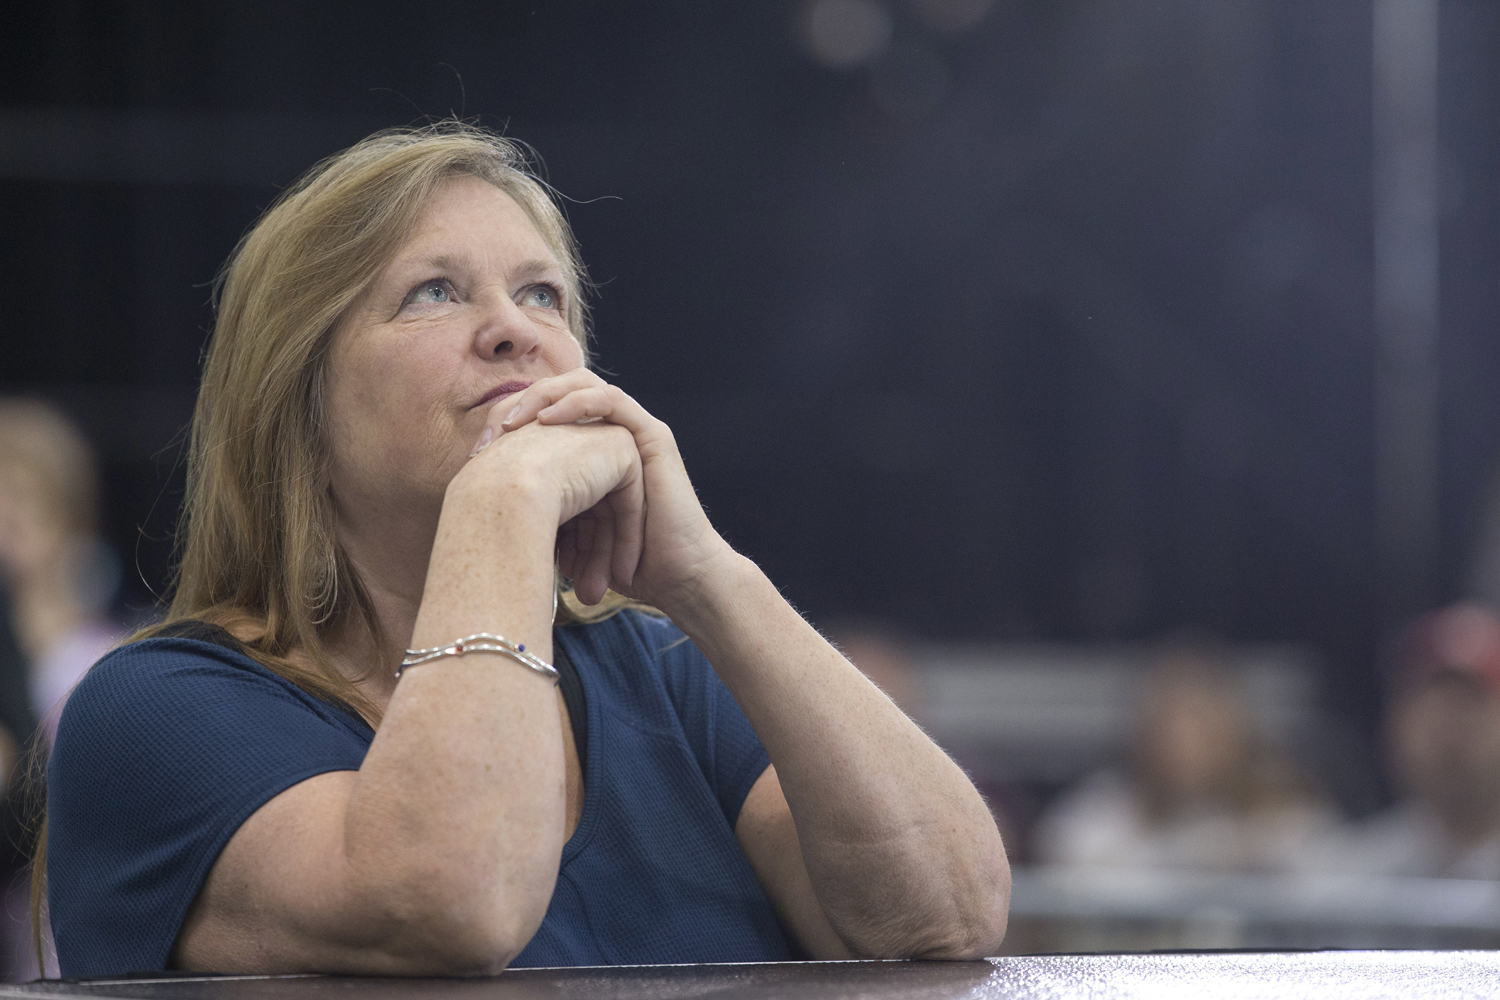 Jane Sanders, wife of Sen. Bernie Sanders, listens as he speaks during a campaign rally in Erie, Pa., Tuesday, April 19, 2016. (Mary Altaffer/AP)